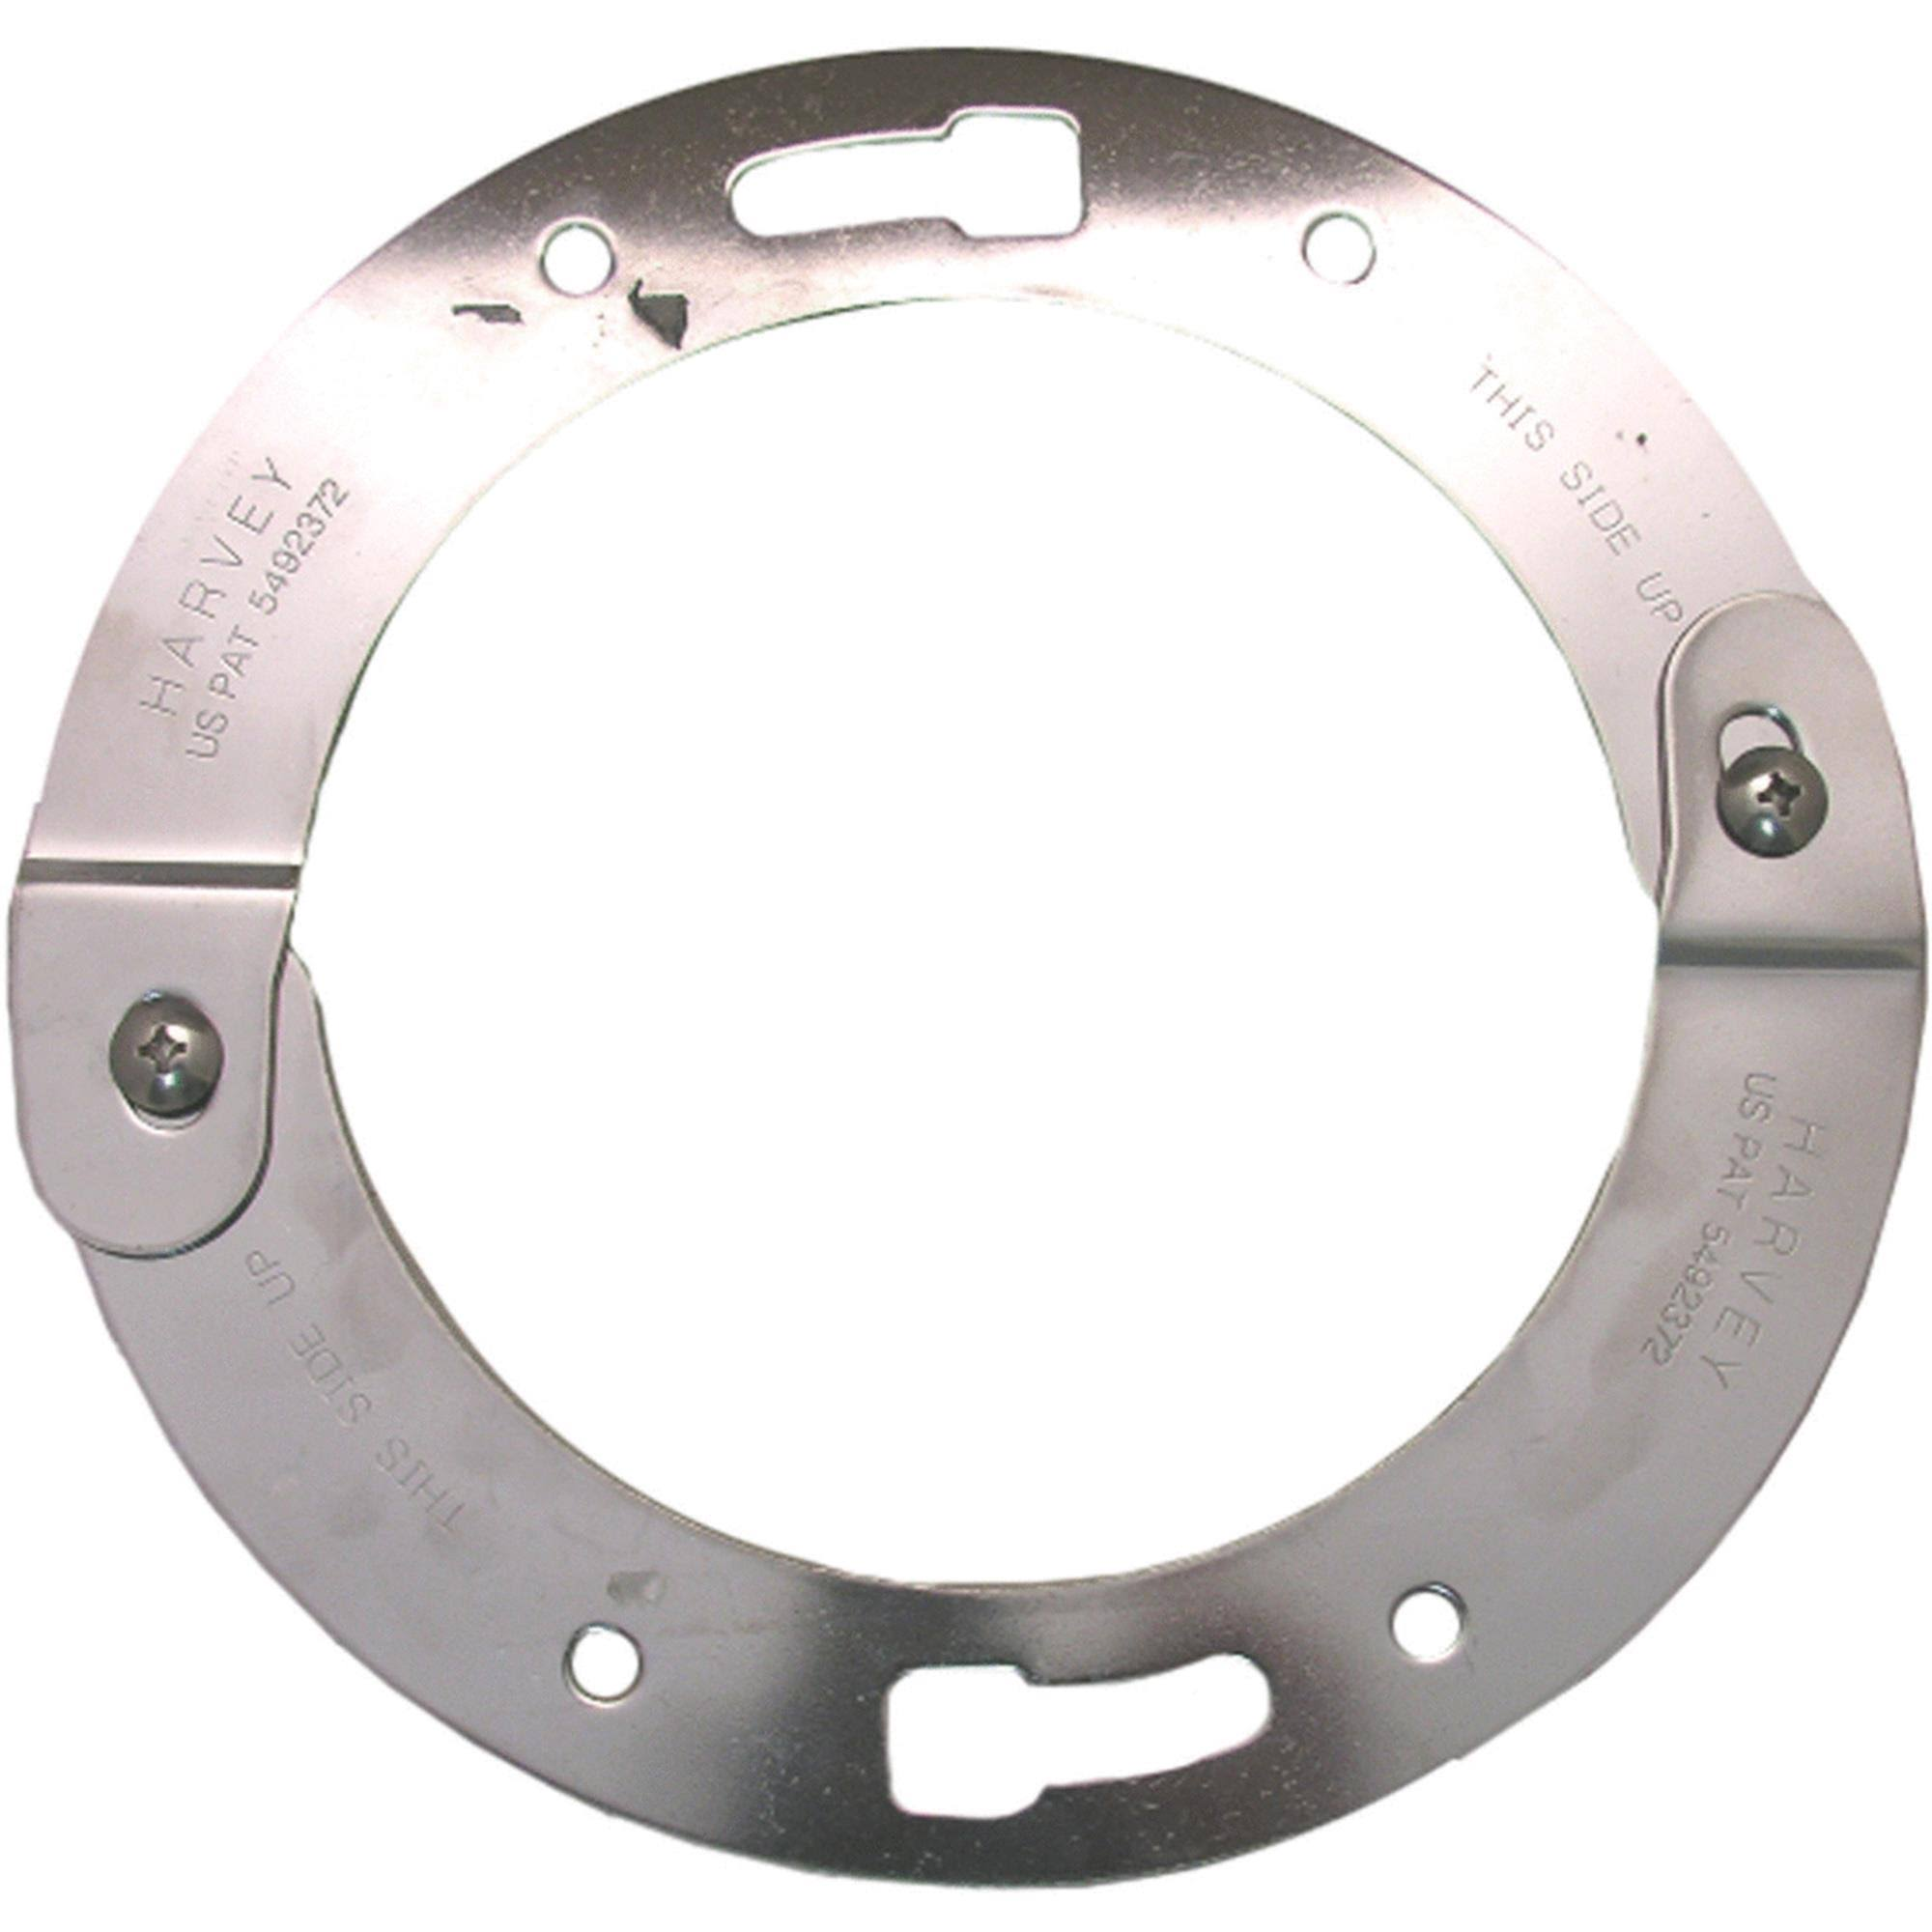 Toilet Flange Harveys Split Ring - Stainless Steel